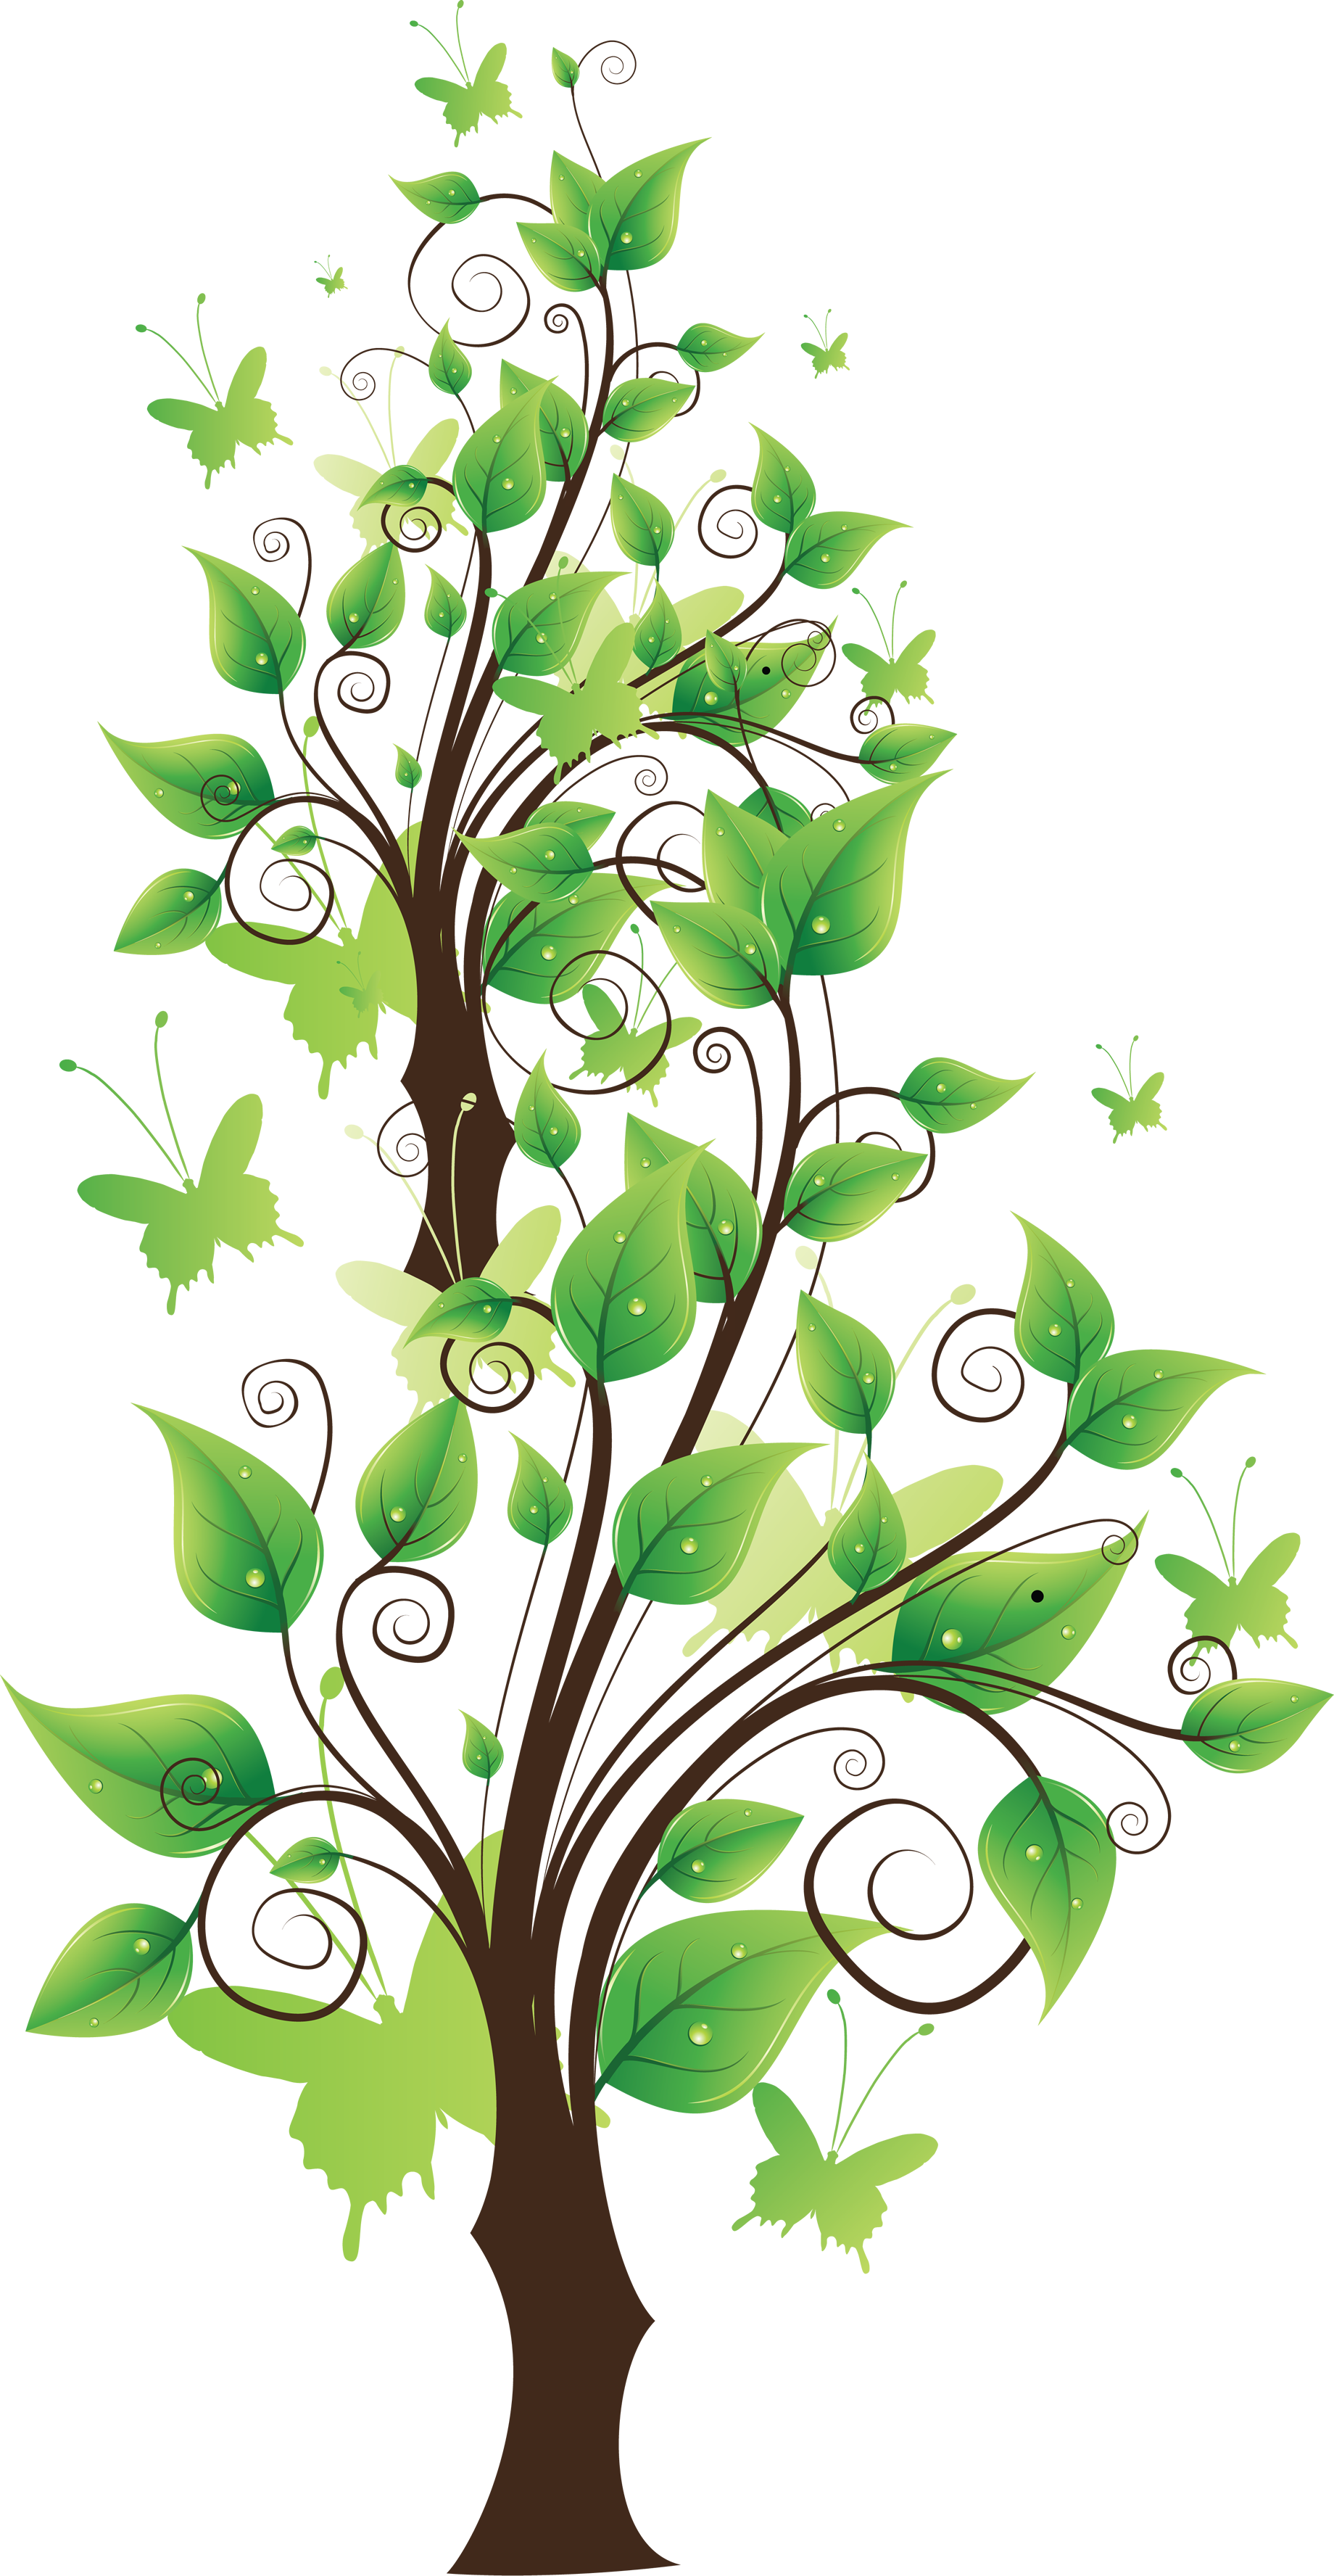 Flower tree clipart png picture download Png tree clipart - ClipartFest picture download